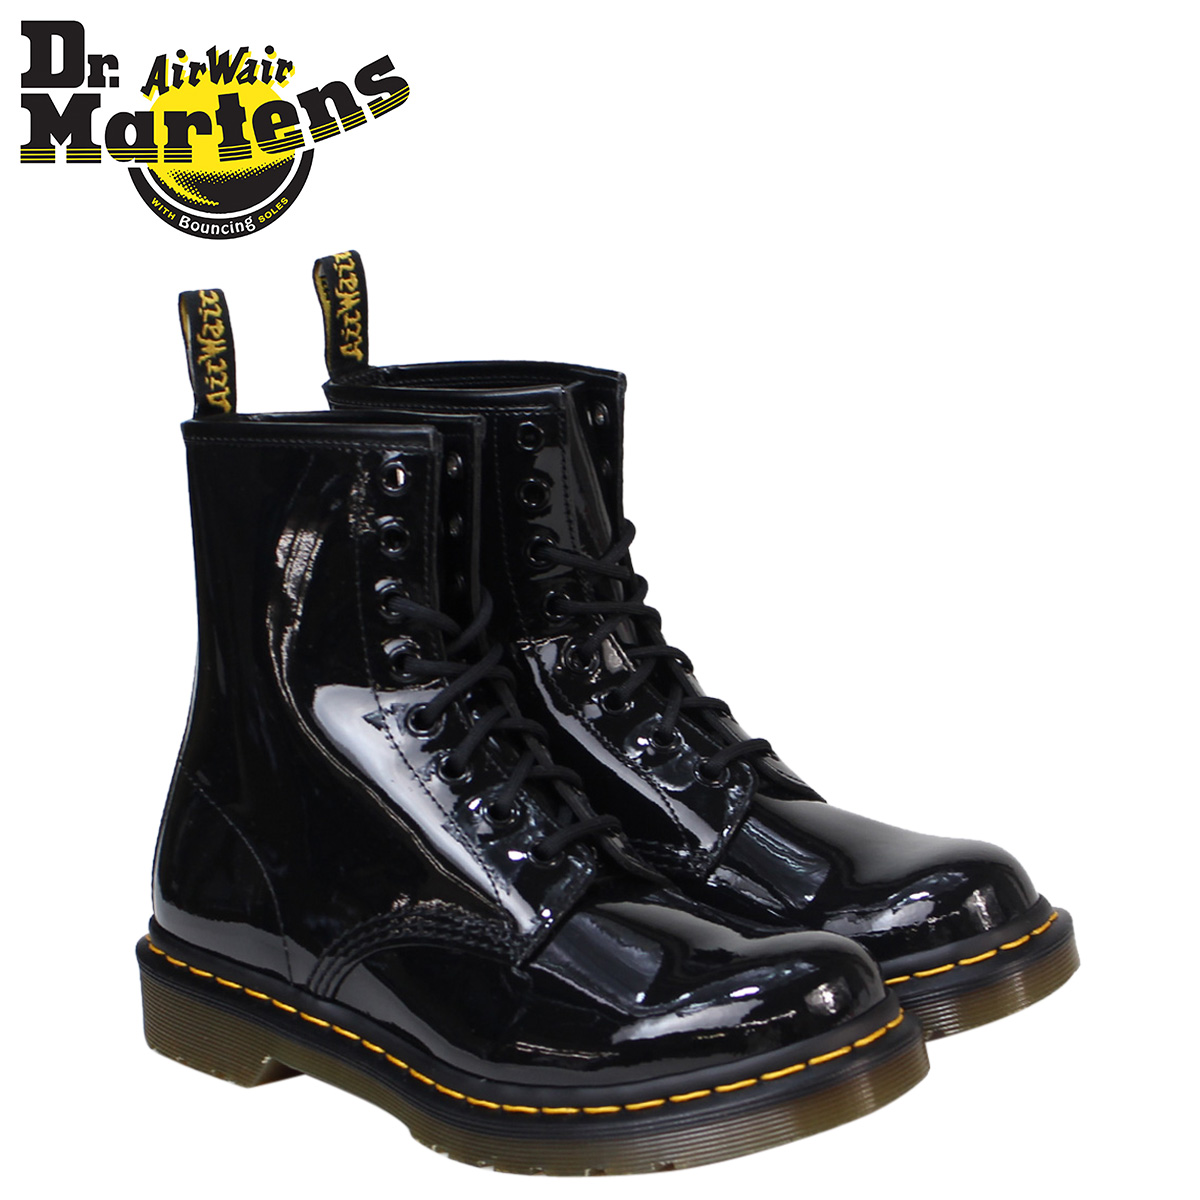 c1aed05fe3c Dr.Martens doctor Martin 1460 8 hall boots Lady's WOMENS 8EYE BOOT  R11821011 men